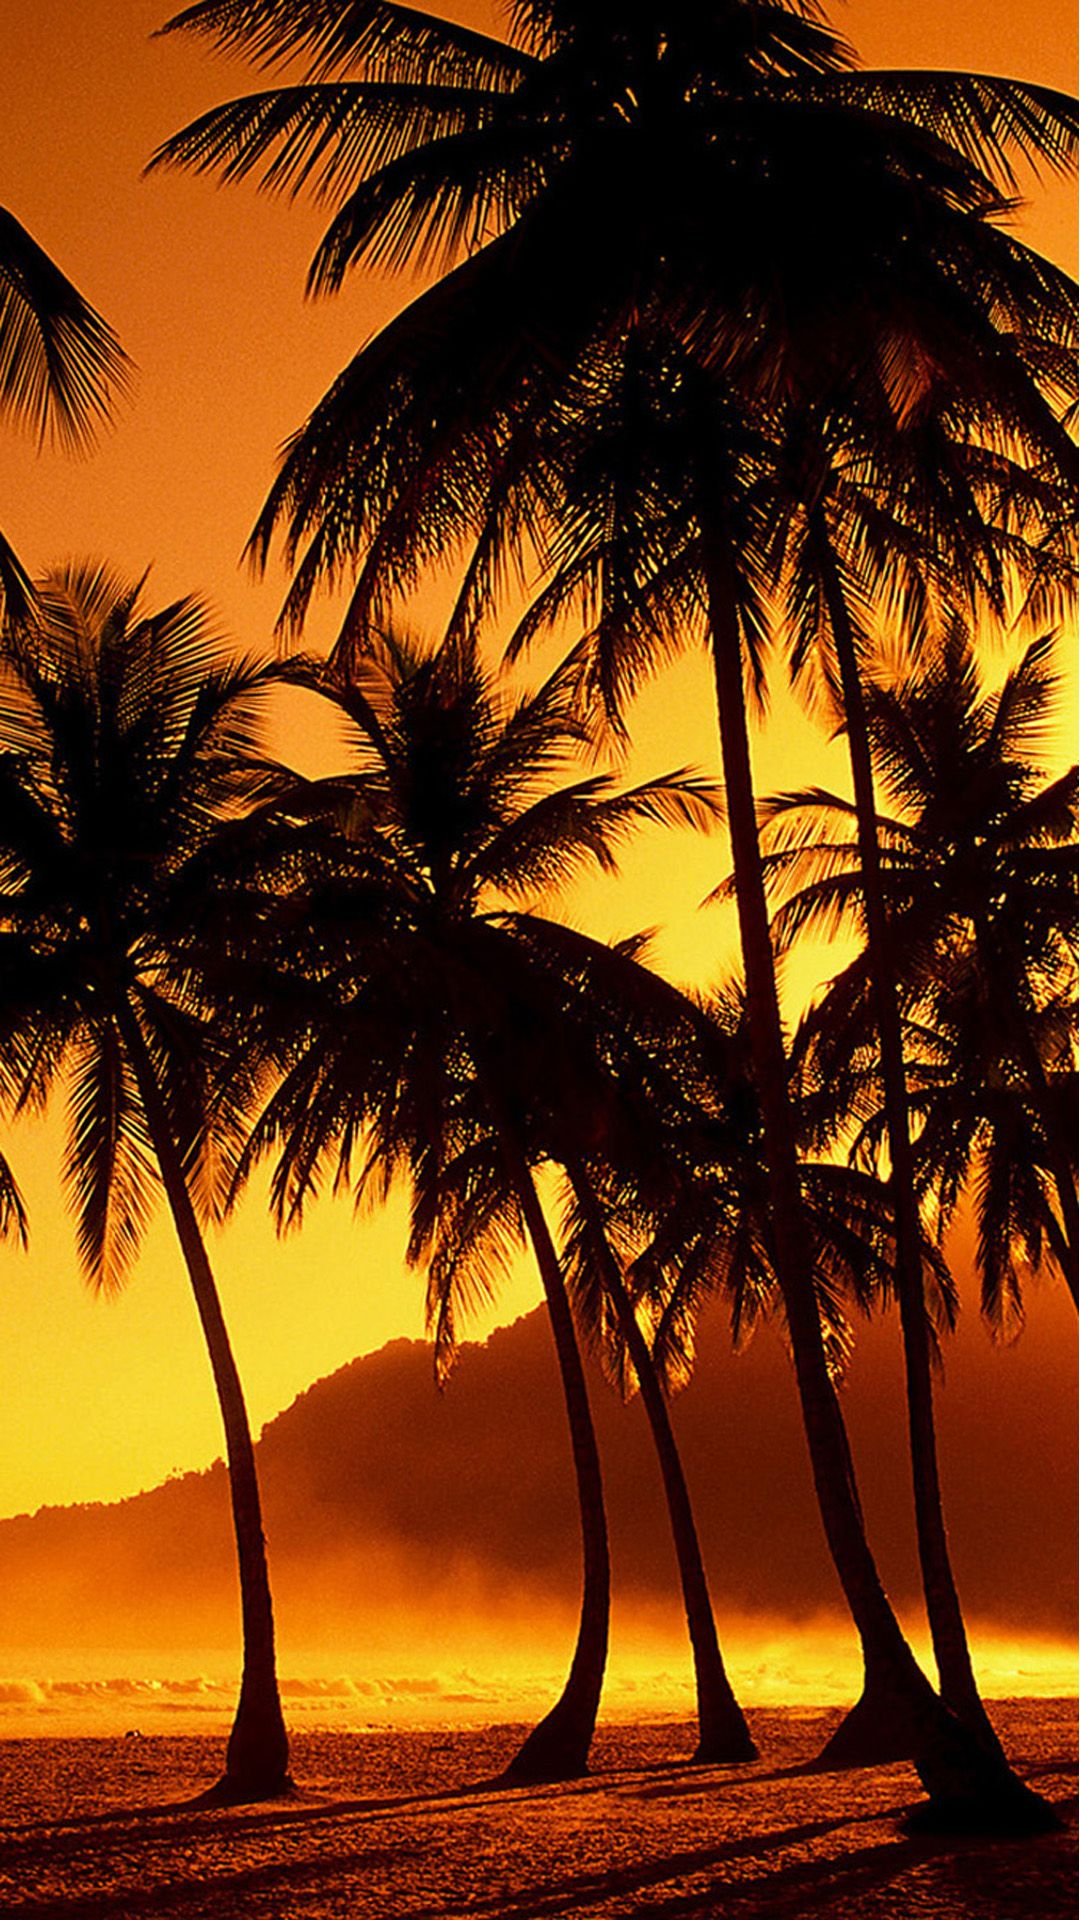 Nature Sunset Beach Coconut Grove iPhone 6 plus wallpaper 1080x1920